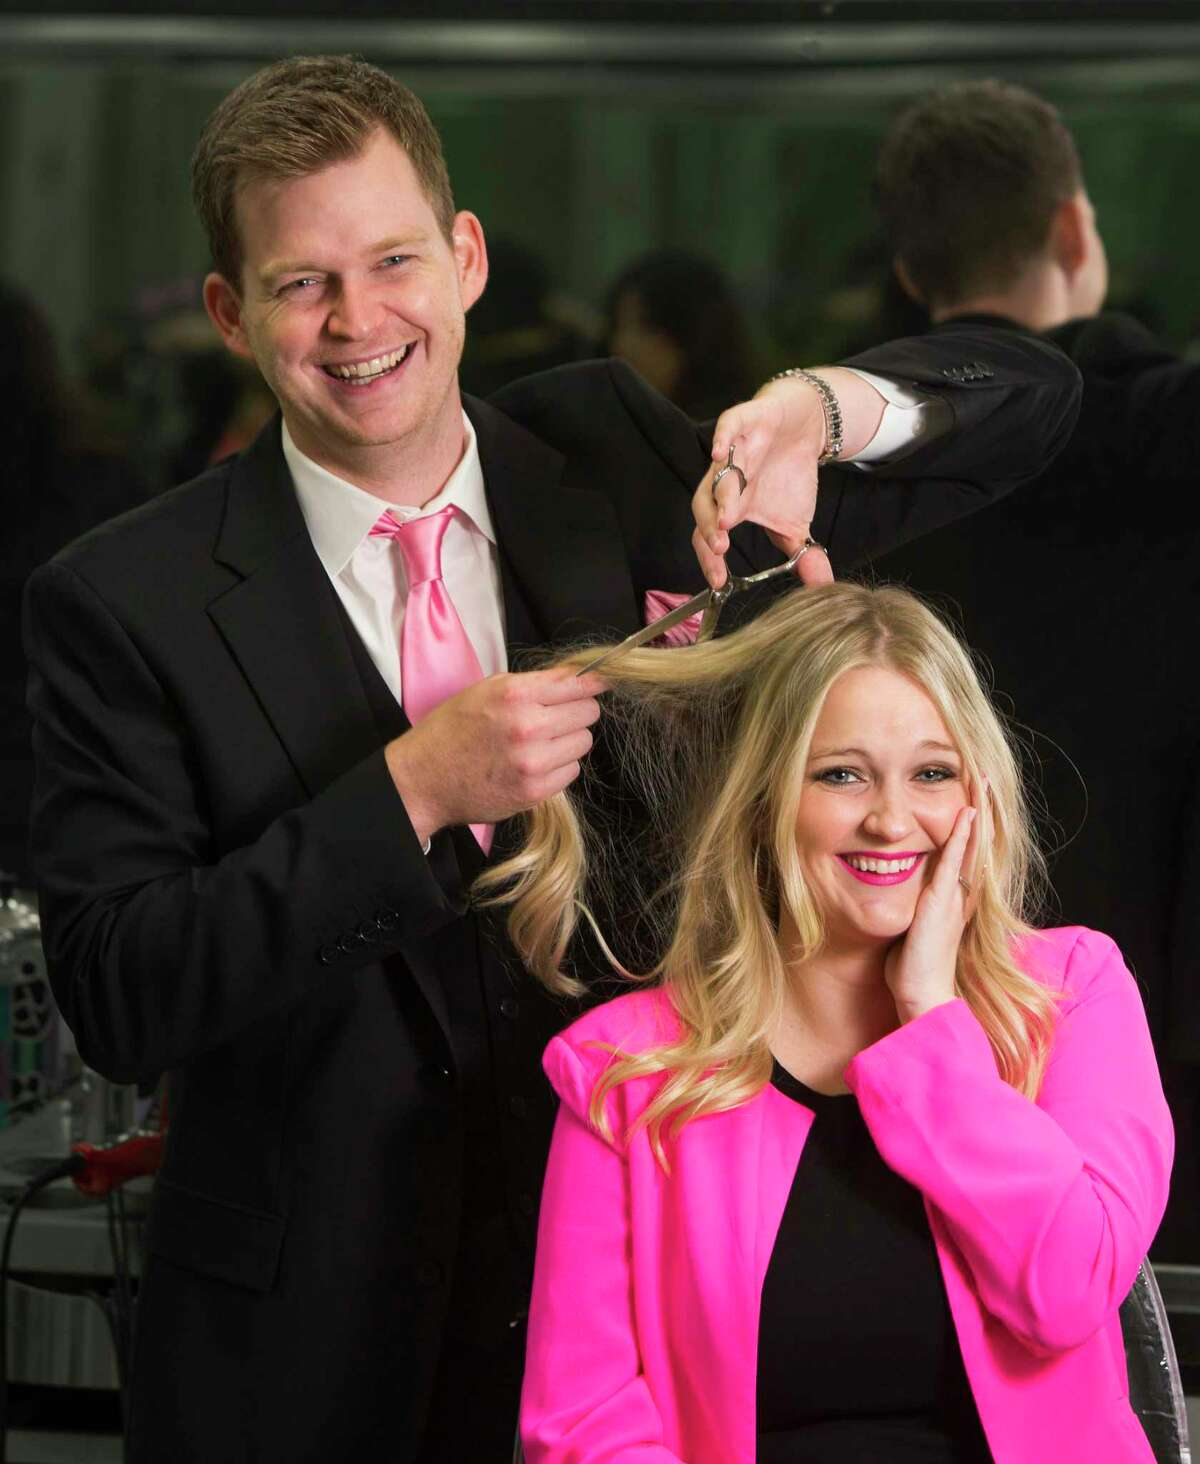 Visible Changes president Johnny McCormack, left, and his sister Meagan McCormack pose for a portrait at the salon in the Galleria on Wednesday, Oct. 8, 2014, in Houston. Maryanne McCormack began with one salon in 1977 at the Greenspoint Mall in Houston. The company has grown to include 17 salons across the state of Texas. ( Brett Coomer / Houston Chronicle )